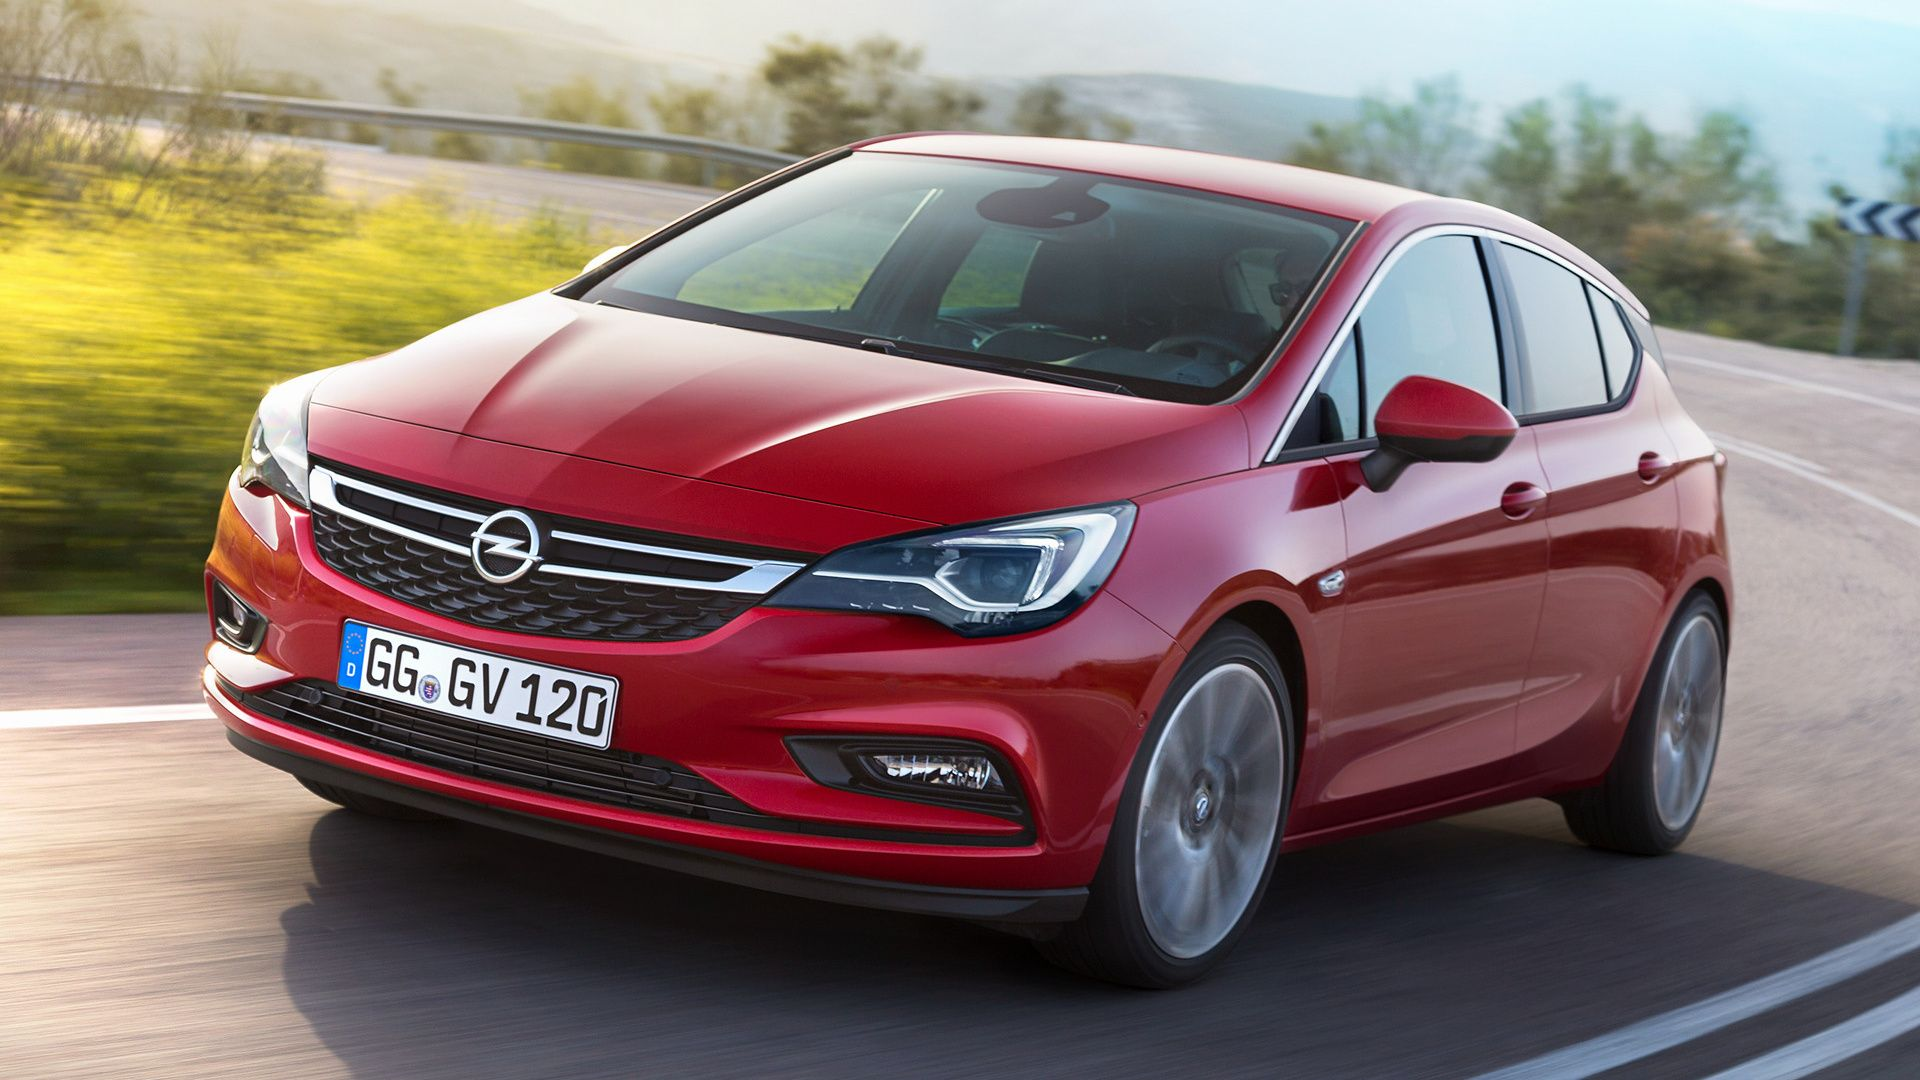 Opel Astra (2015) Wallpapers and HD Images - Car Pixel